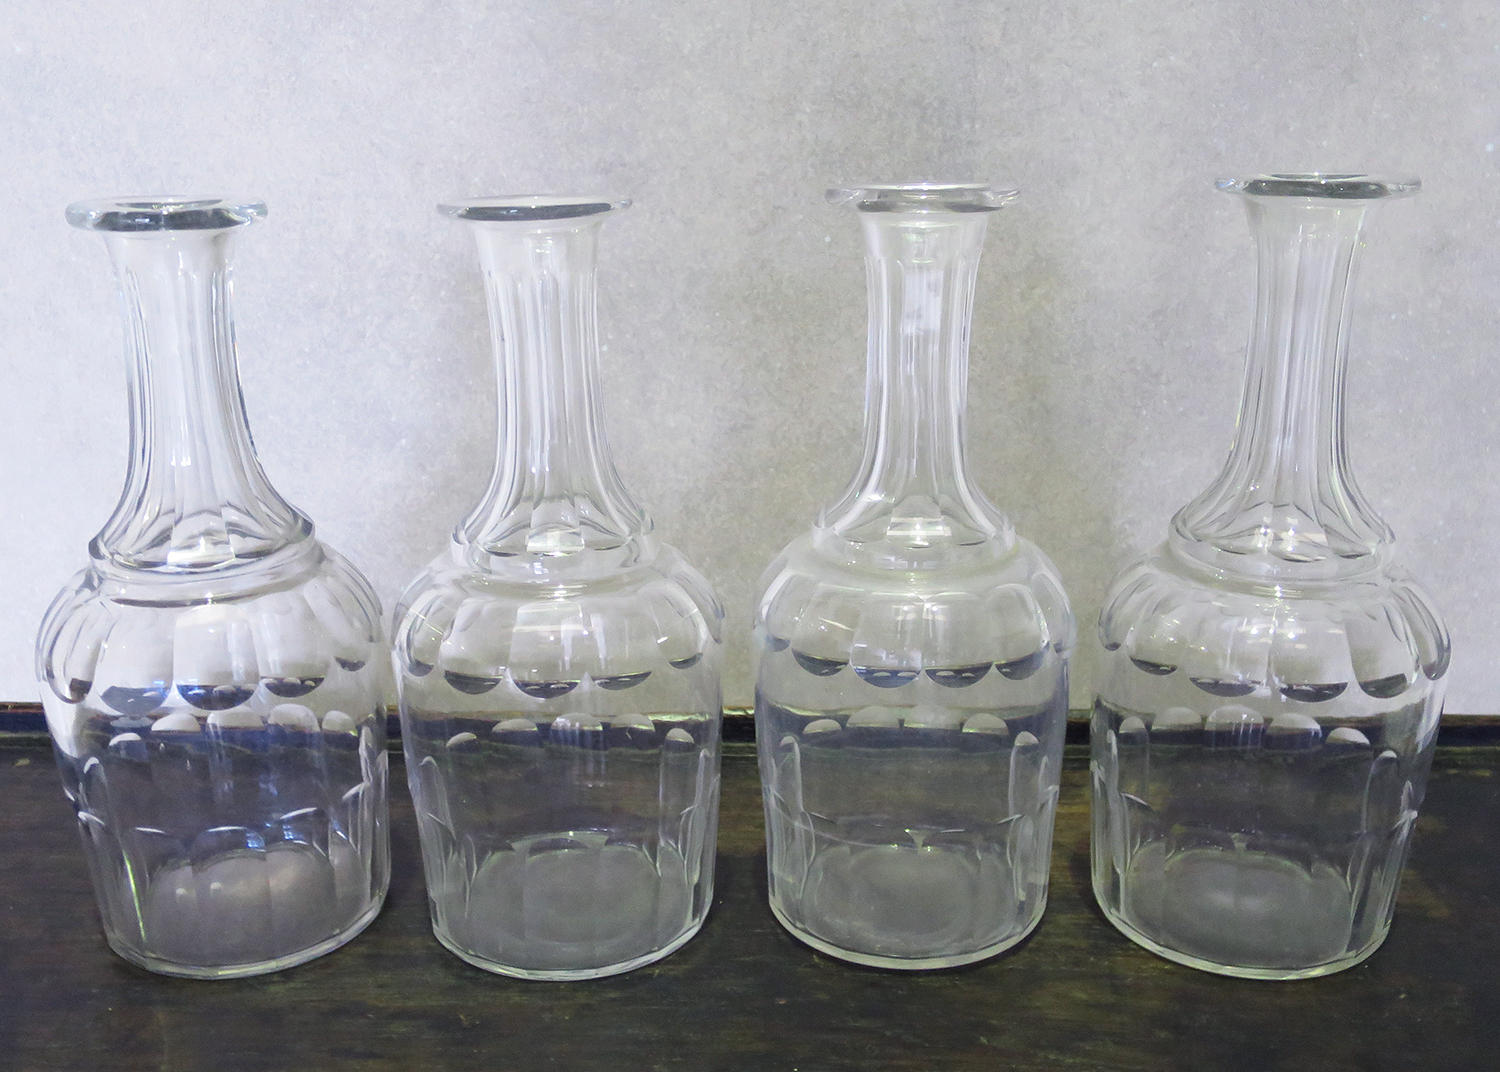 19th century French glass Decanters - Circa 1890